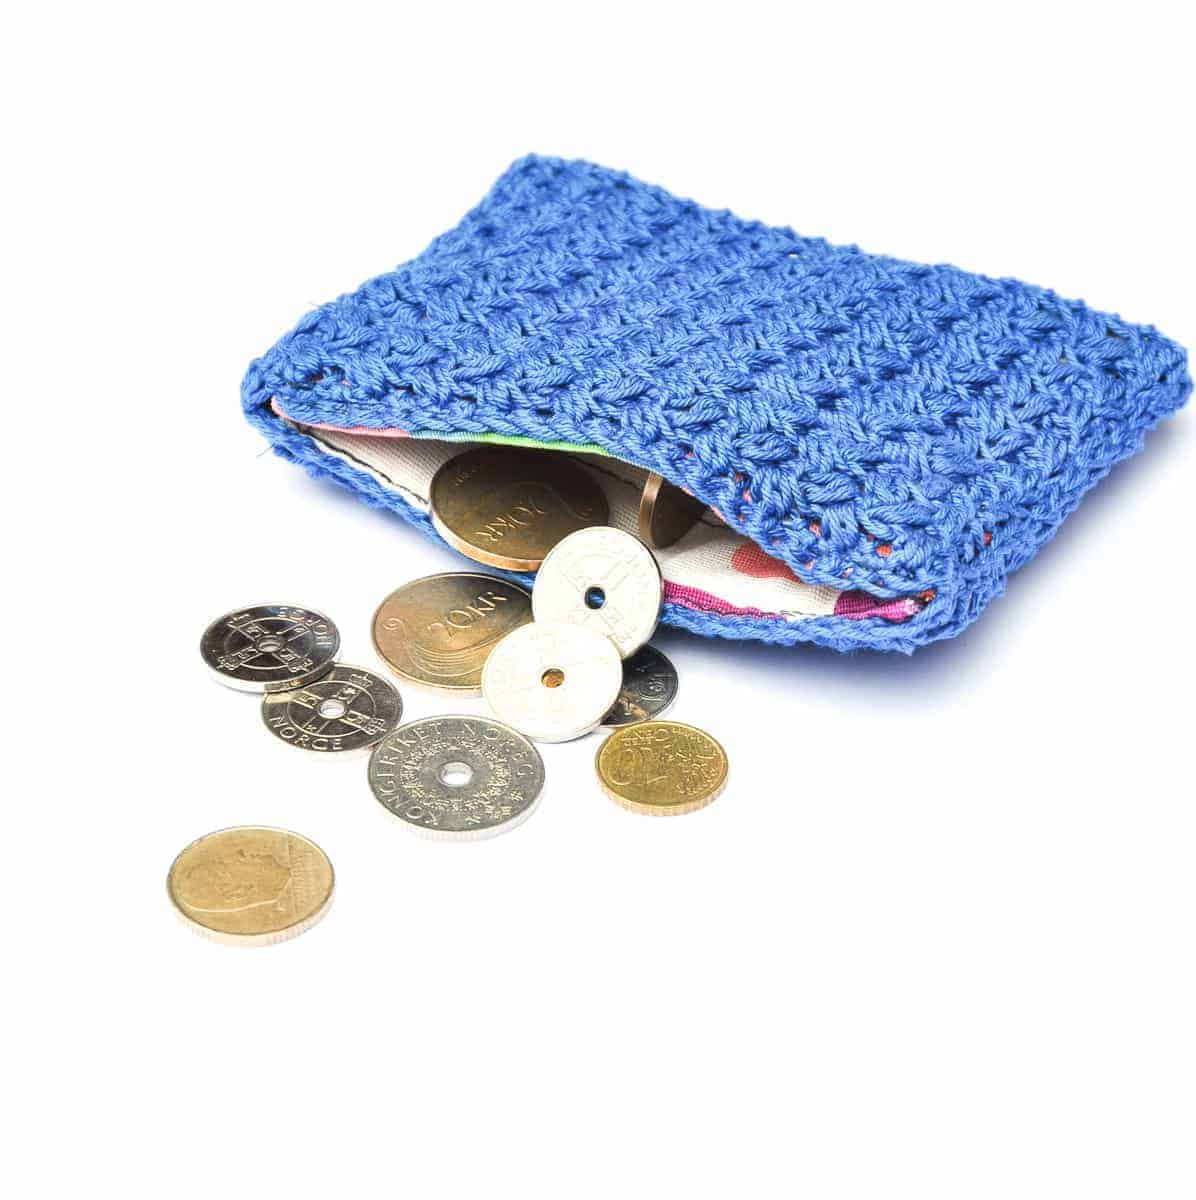 credit card and coin purse crochet pattern design